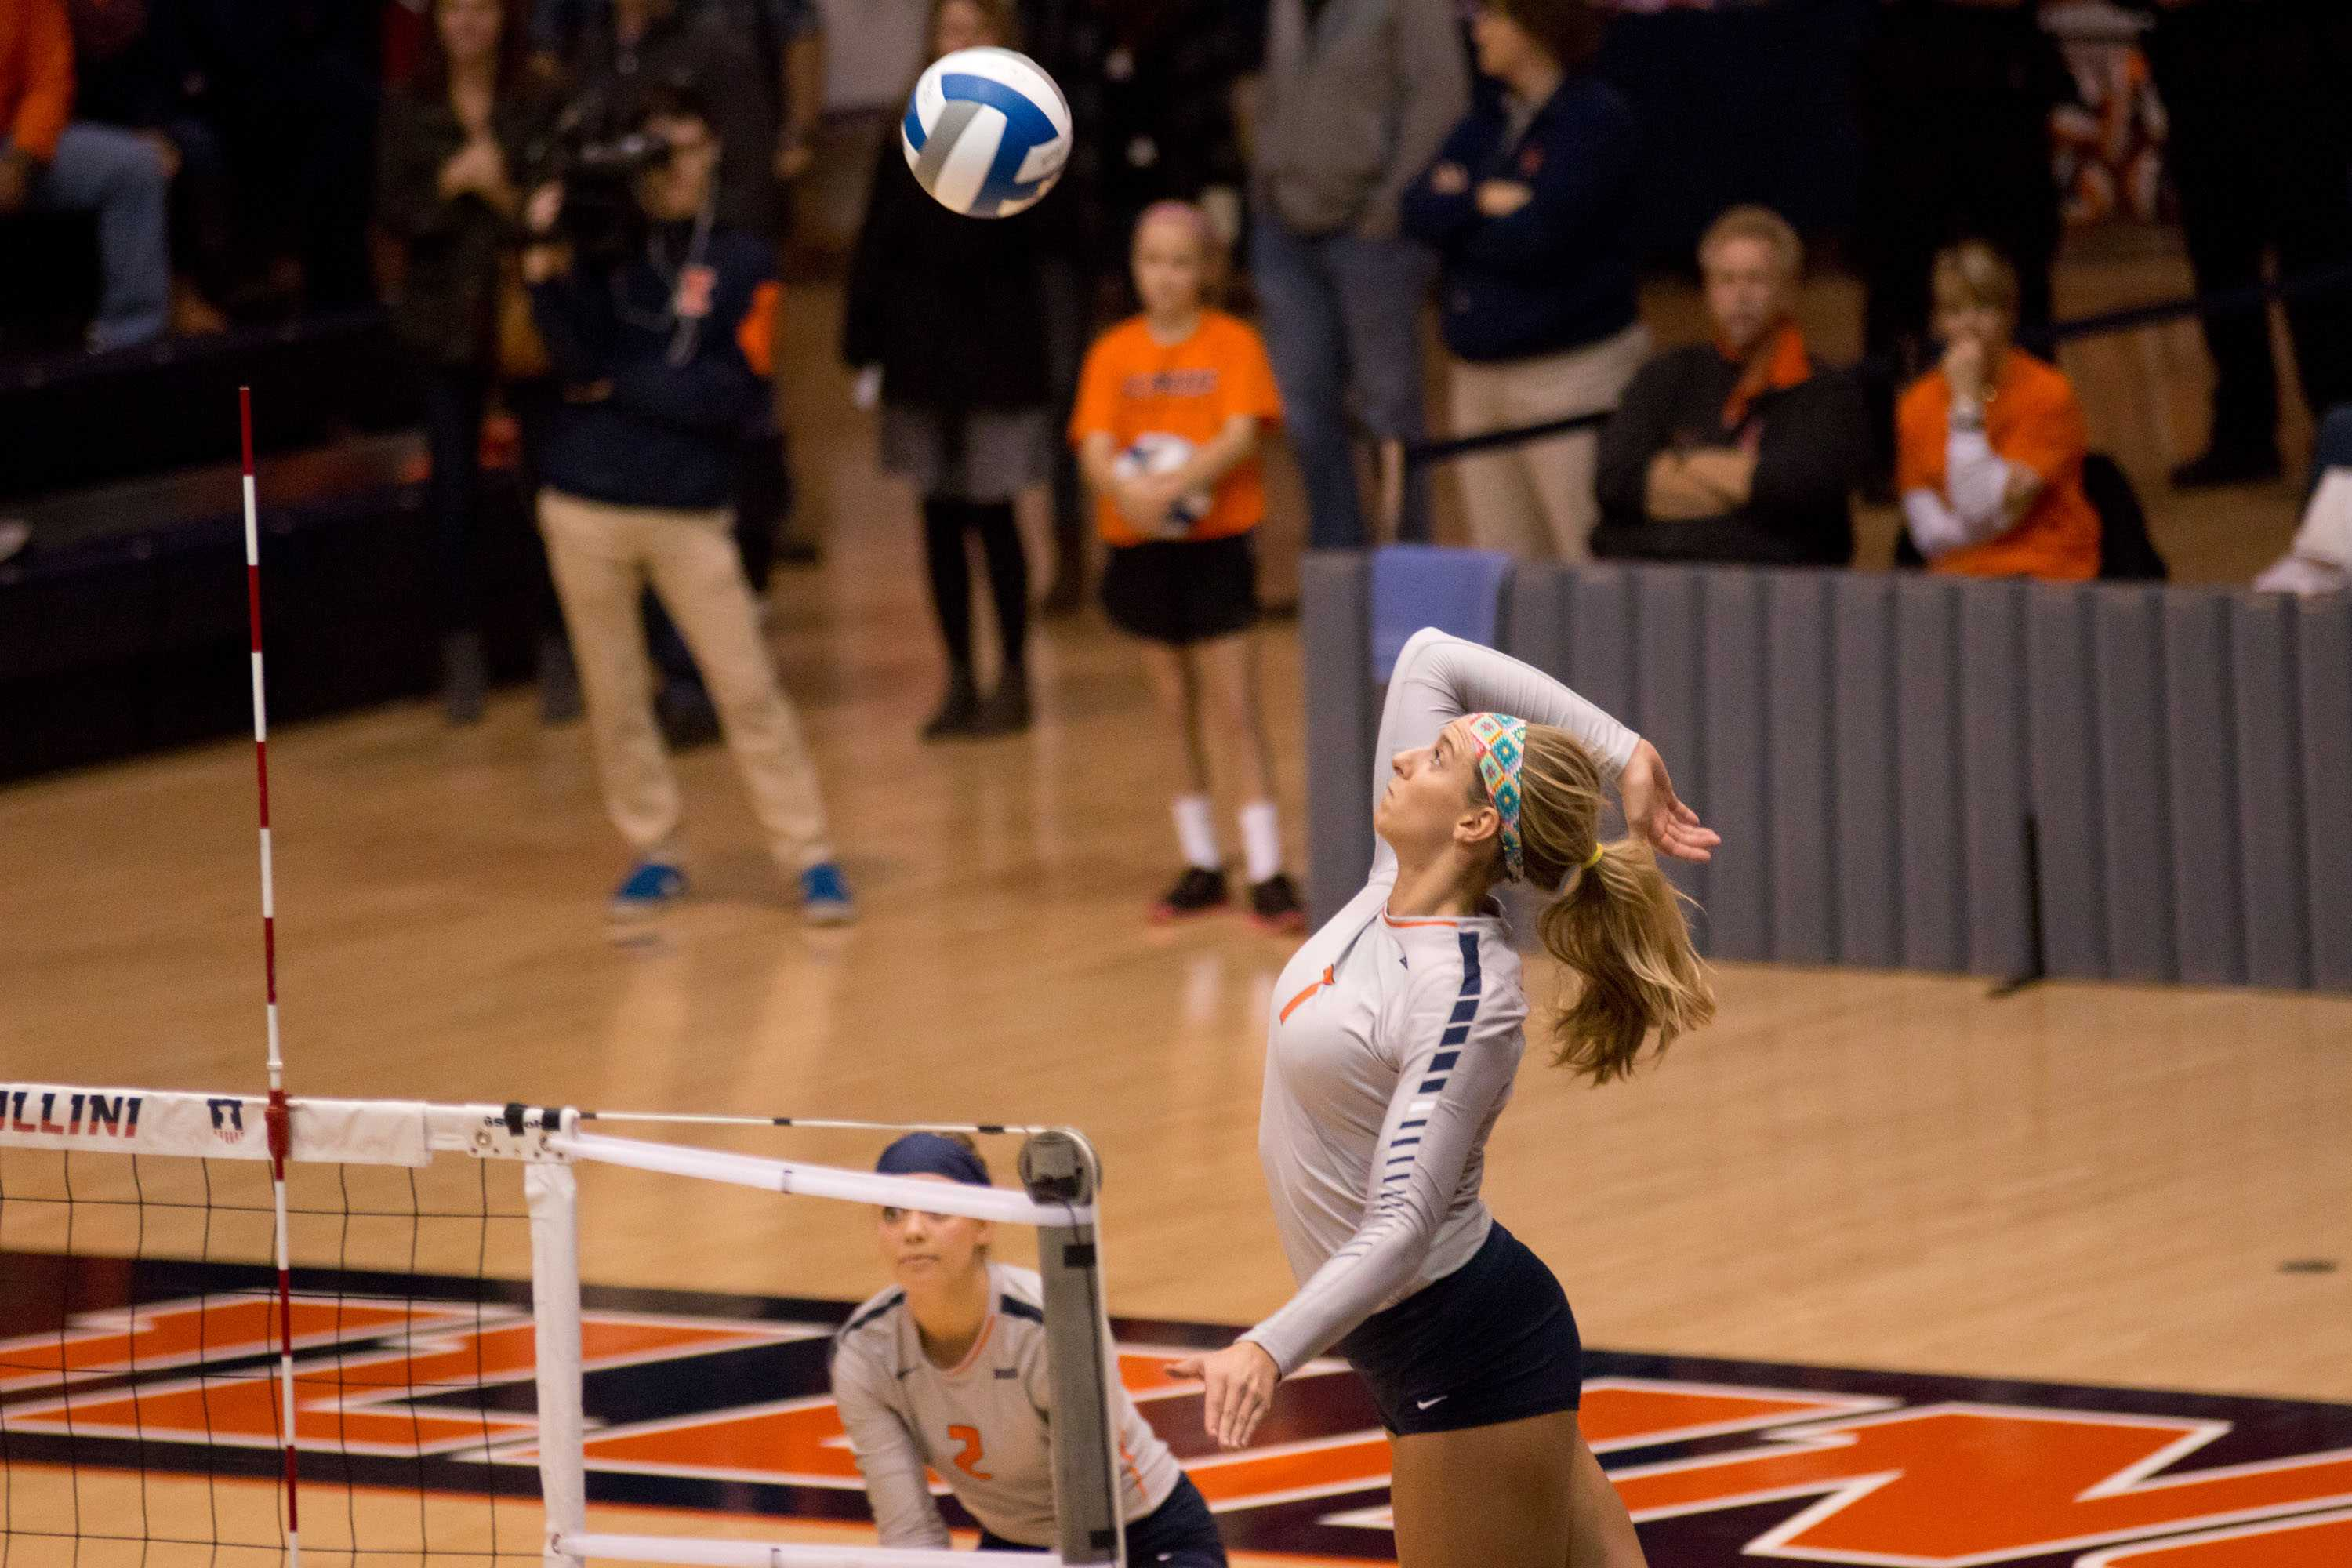 Former Illinois Jocelynn Birks gets ready to spikes the ball during the match against Wisconsin at Huff Hall on Wednesday, Nov. 18, 2015.